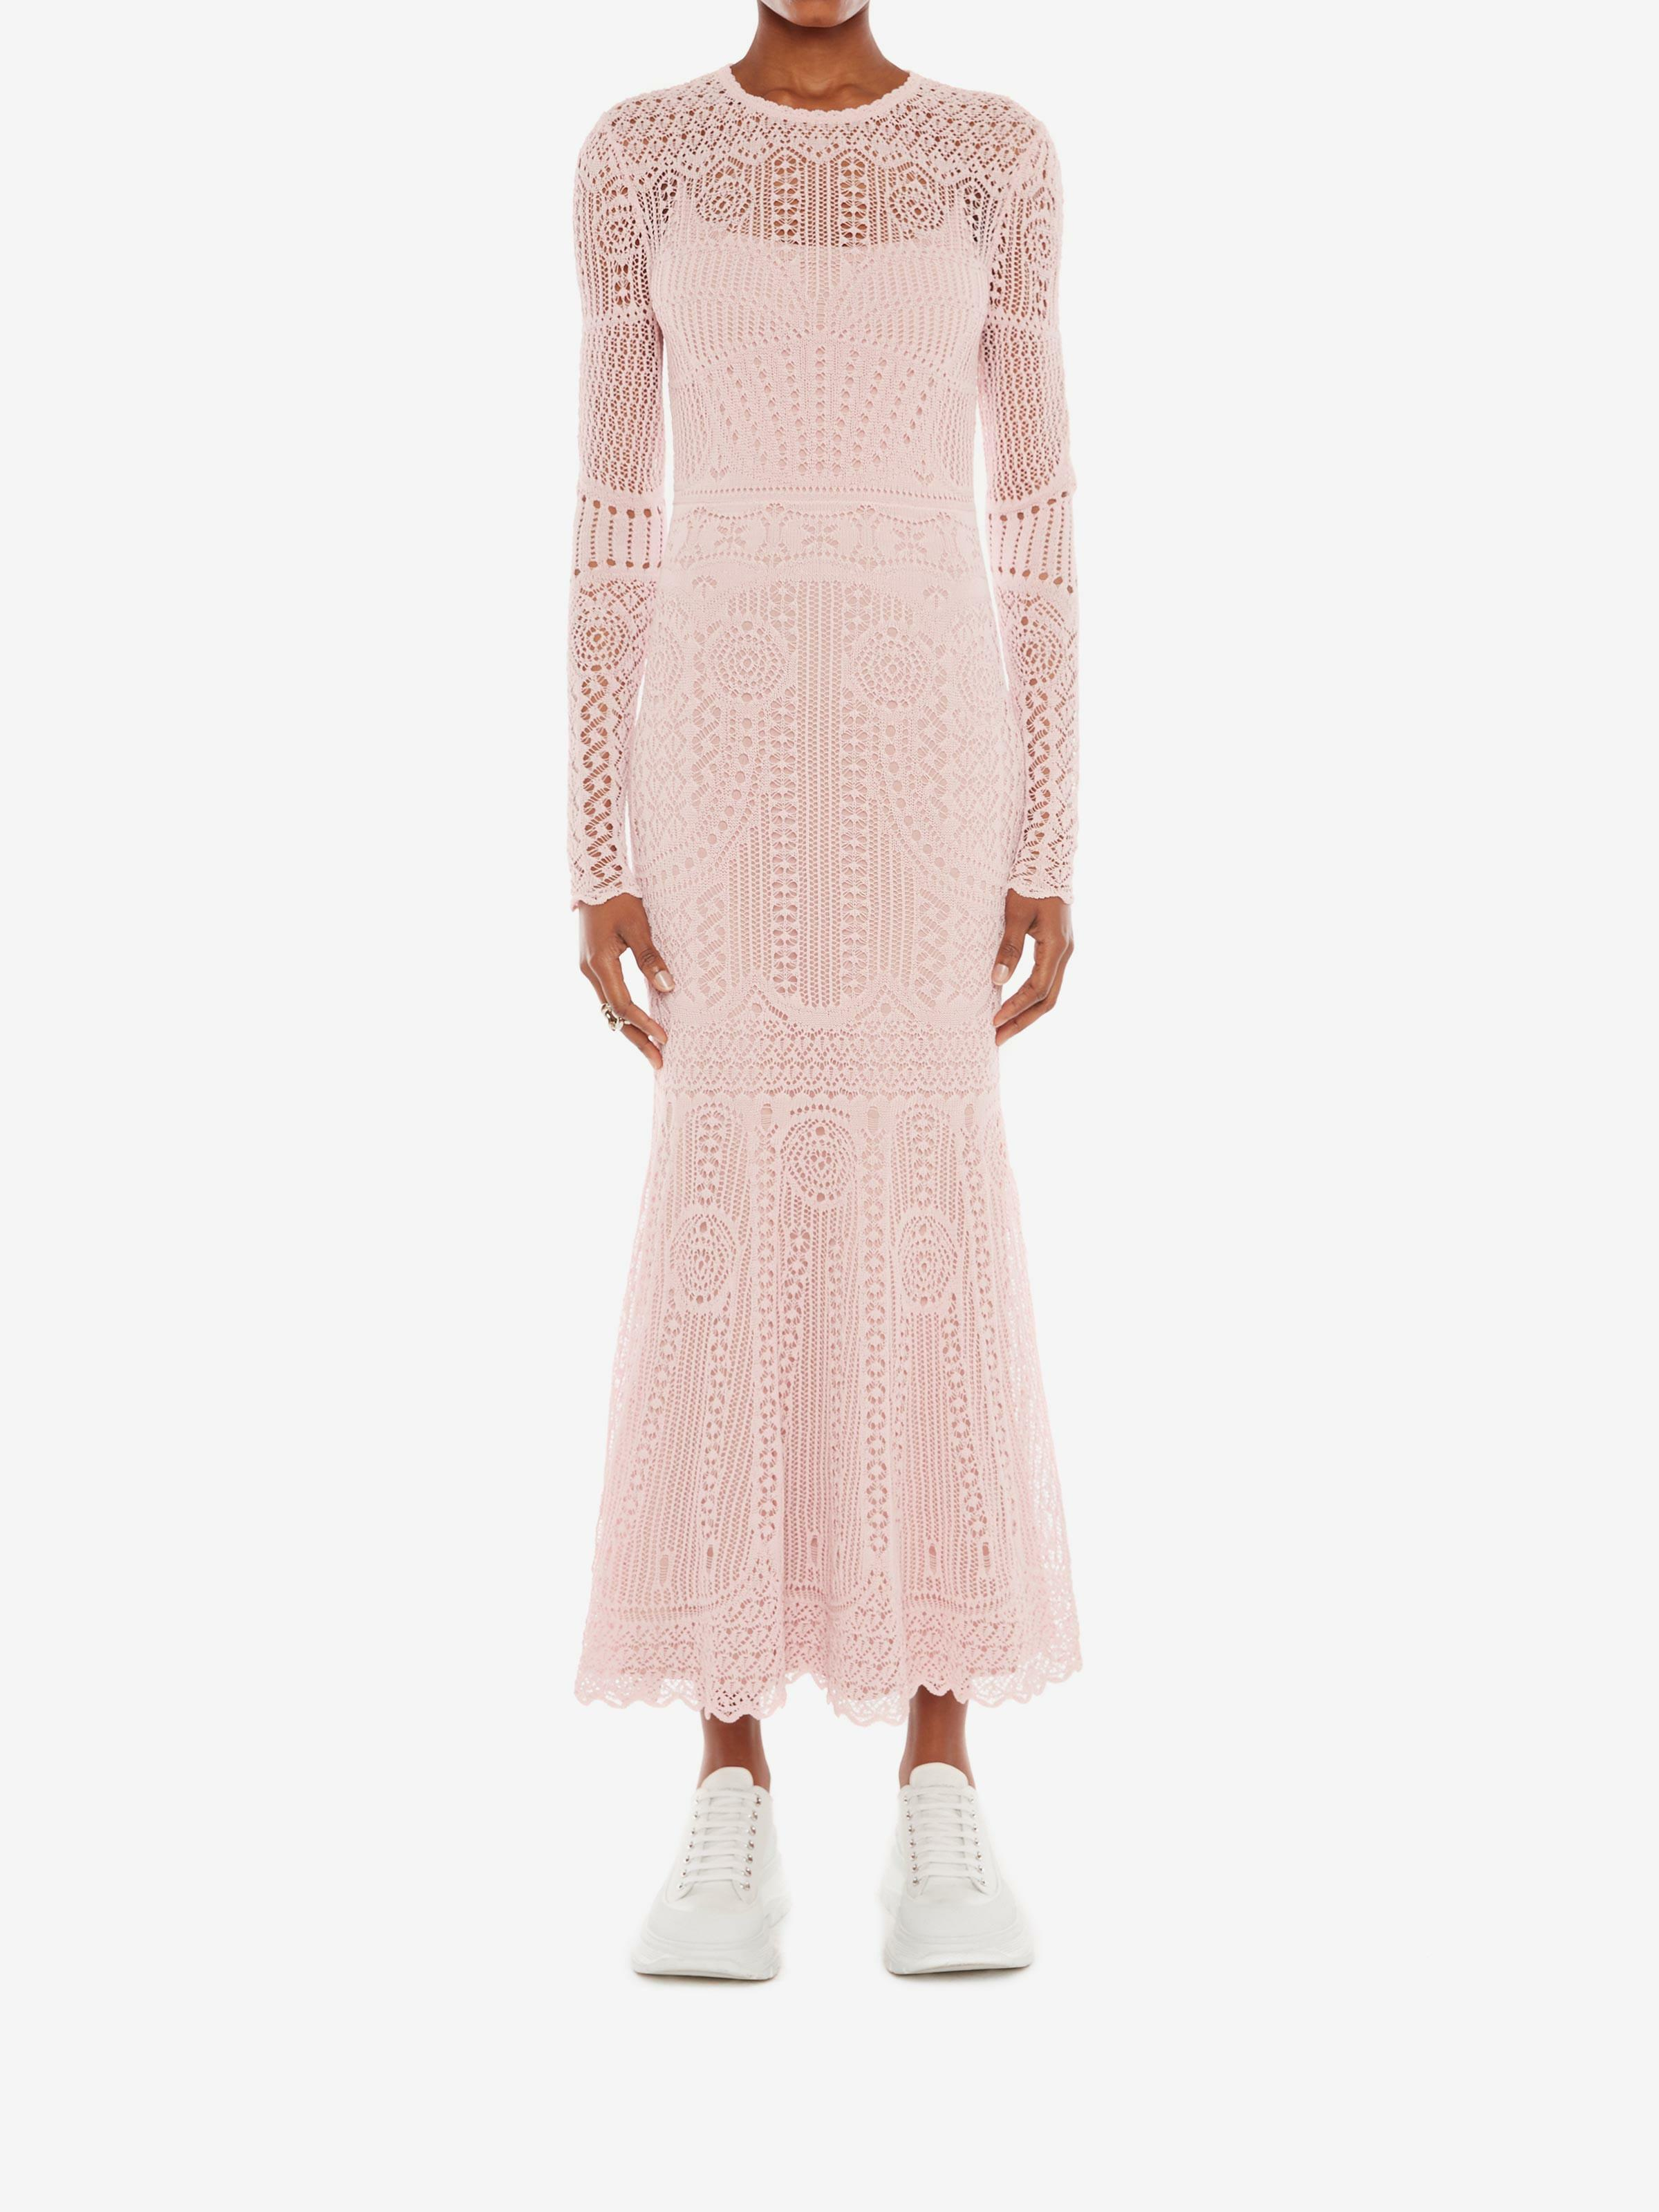 Patchwork Lace Knitted Dress